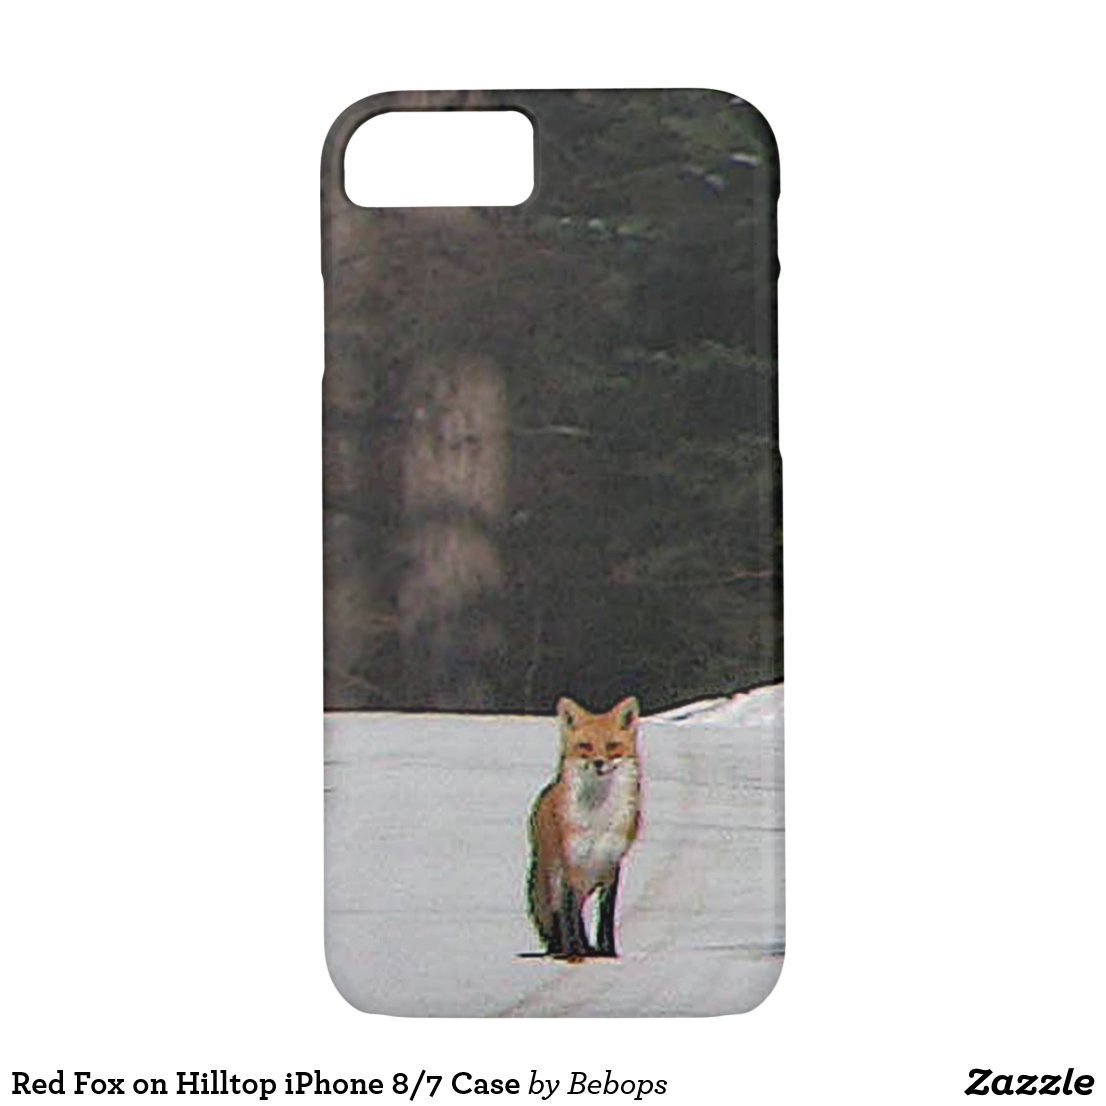 Red Fox on Hilltop iPhone 7 Case